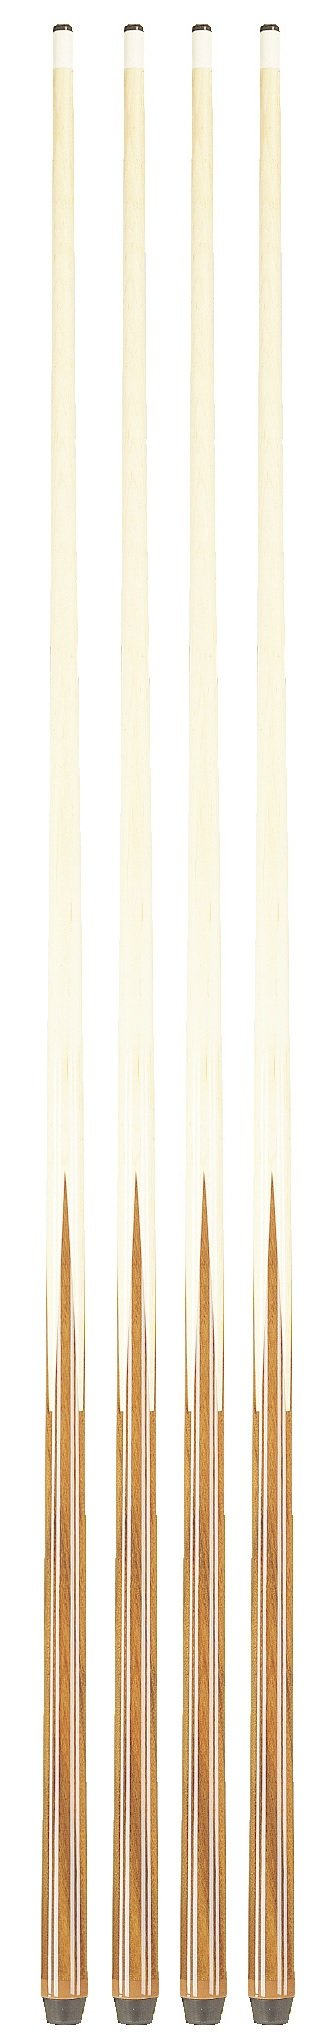 Players Set of House Pool Cue Sticks - Professional Quality For Commercial Or Residential Use (4 Cues)